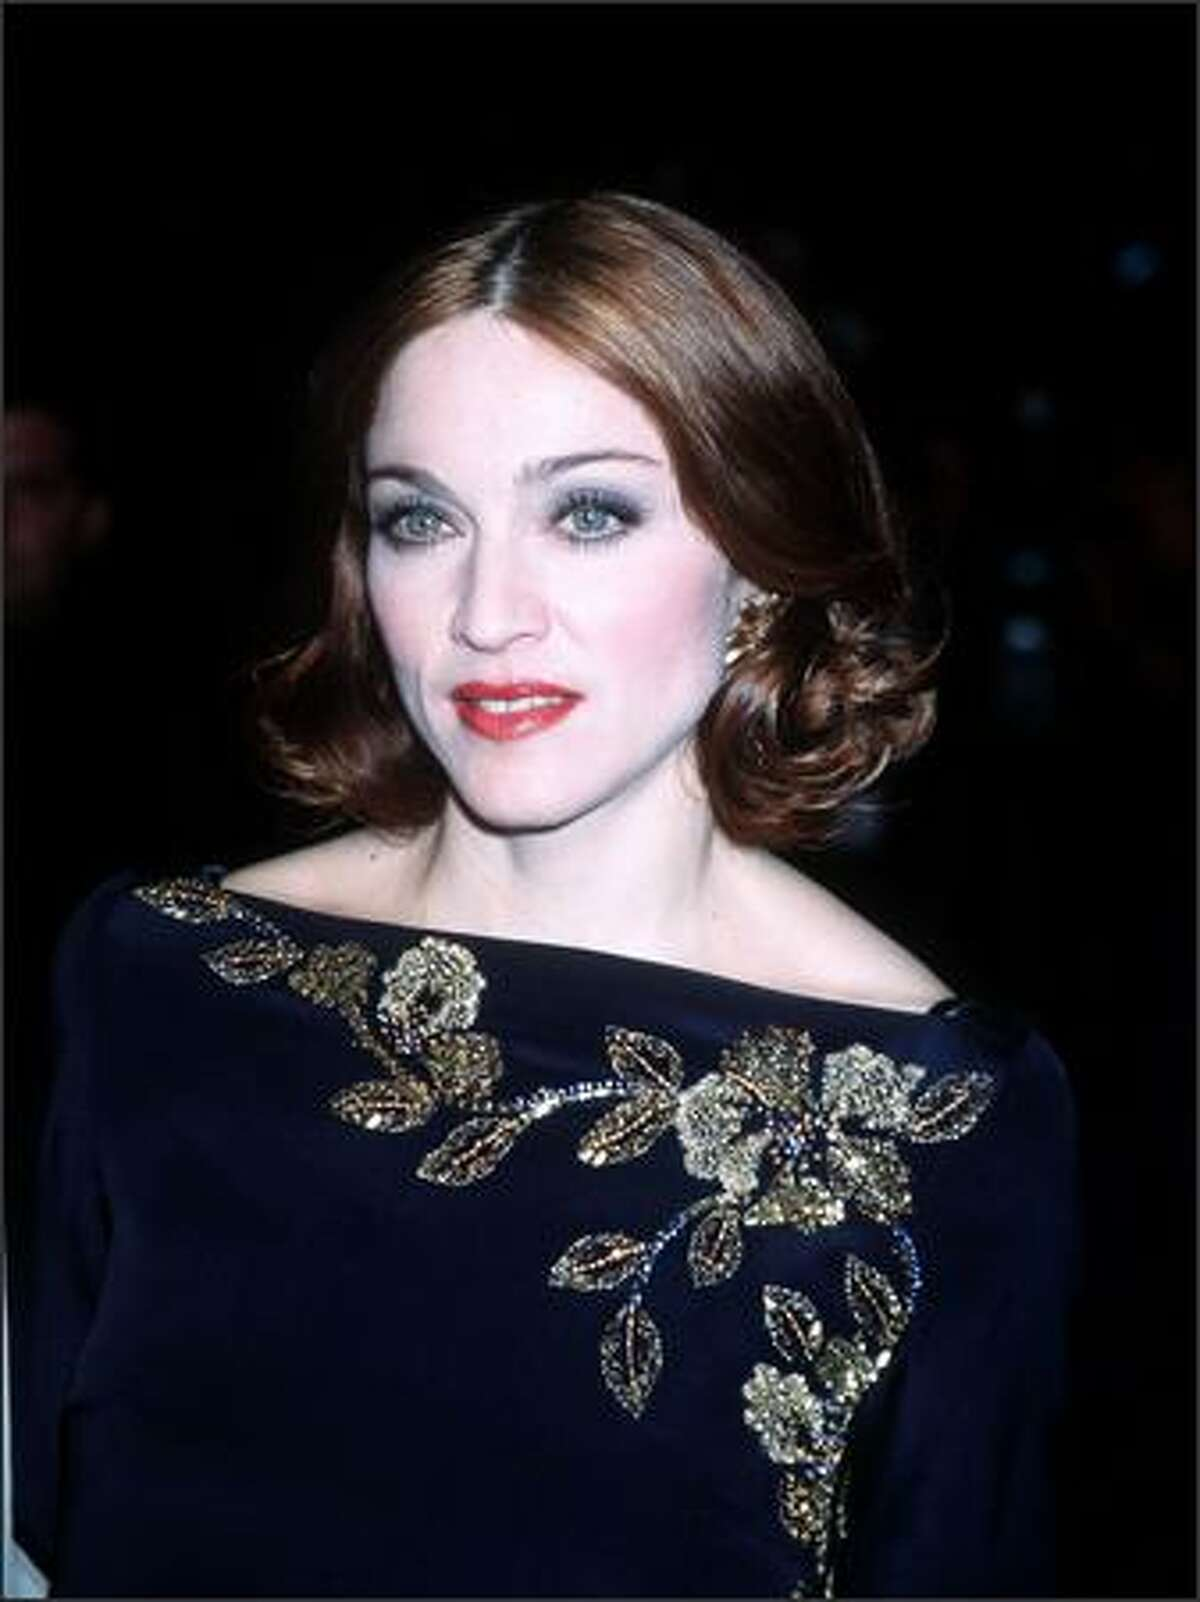 Madonna arrives for a Vanity Fair Oscar Party at Morton's Restaurant in West Hollywood, Calif., March 21, 1999.